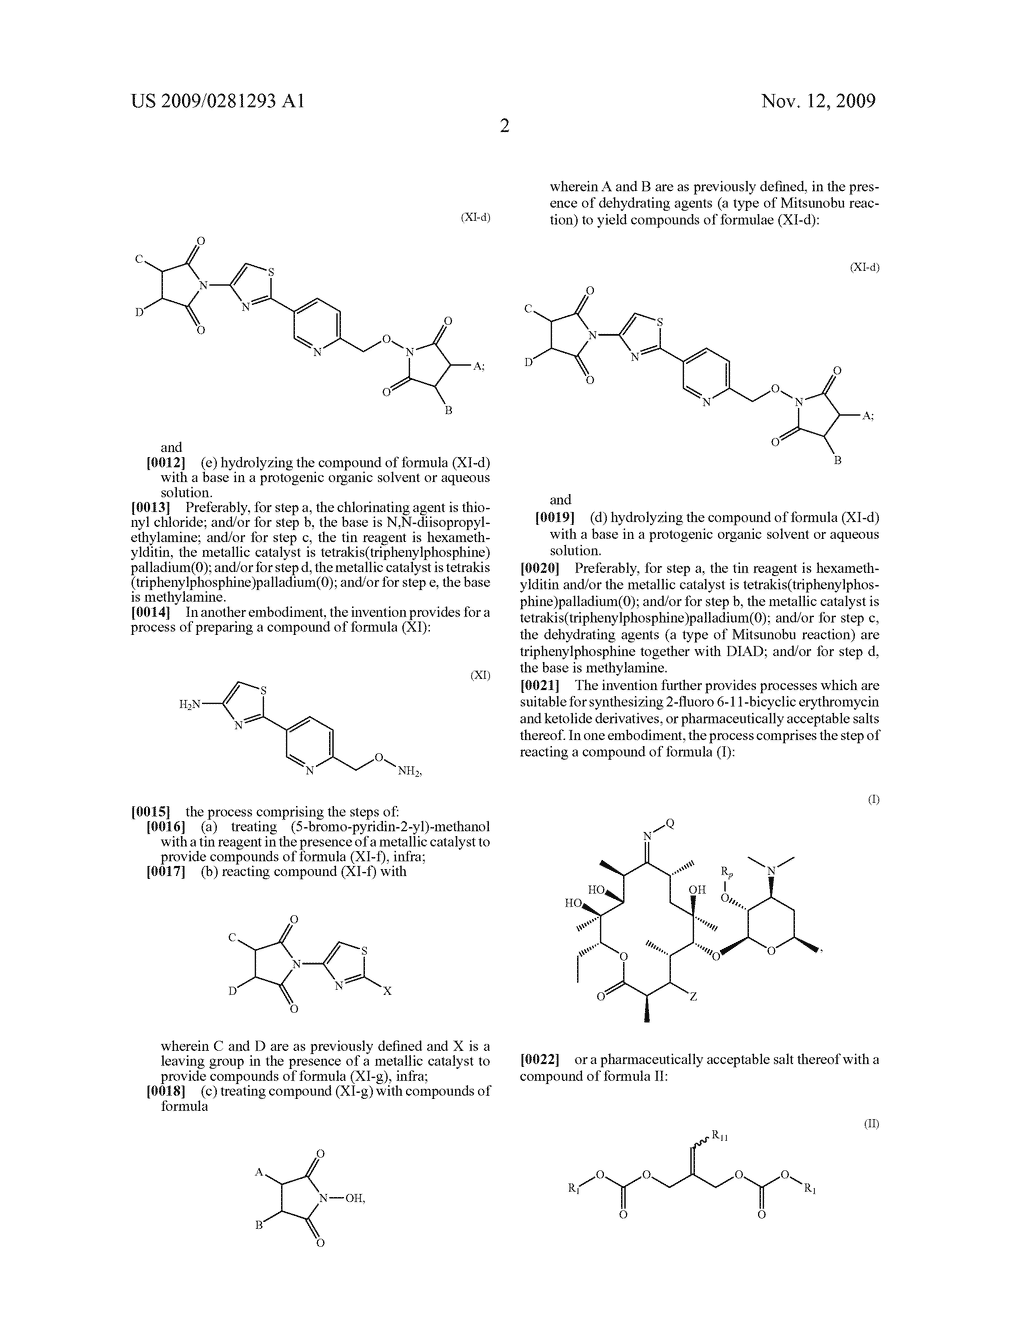 PROCESSES FOR THE PREPARATION OF 2 FLUORO 6-11 BICYCLIC ERYTHROMYCIN DERIVATIVES - diagram, schematic, and image 03